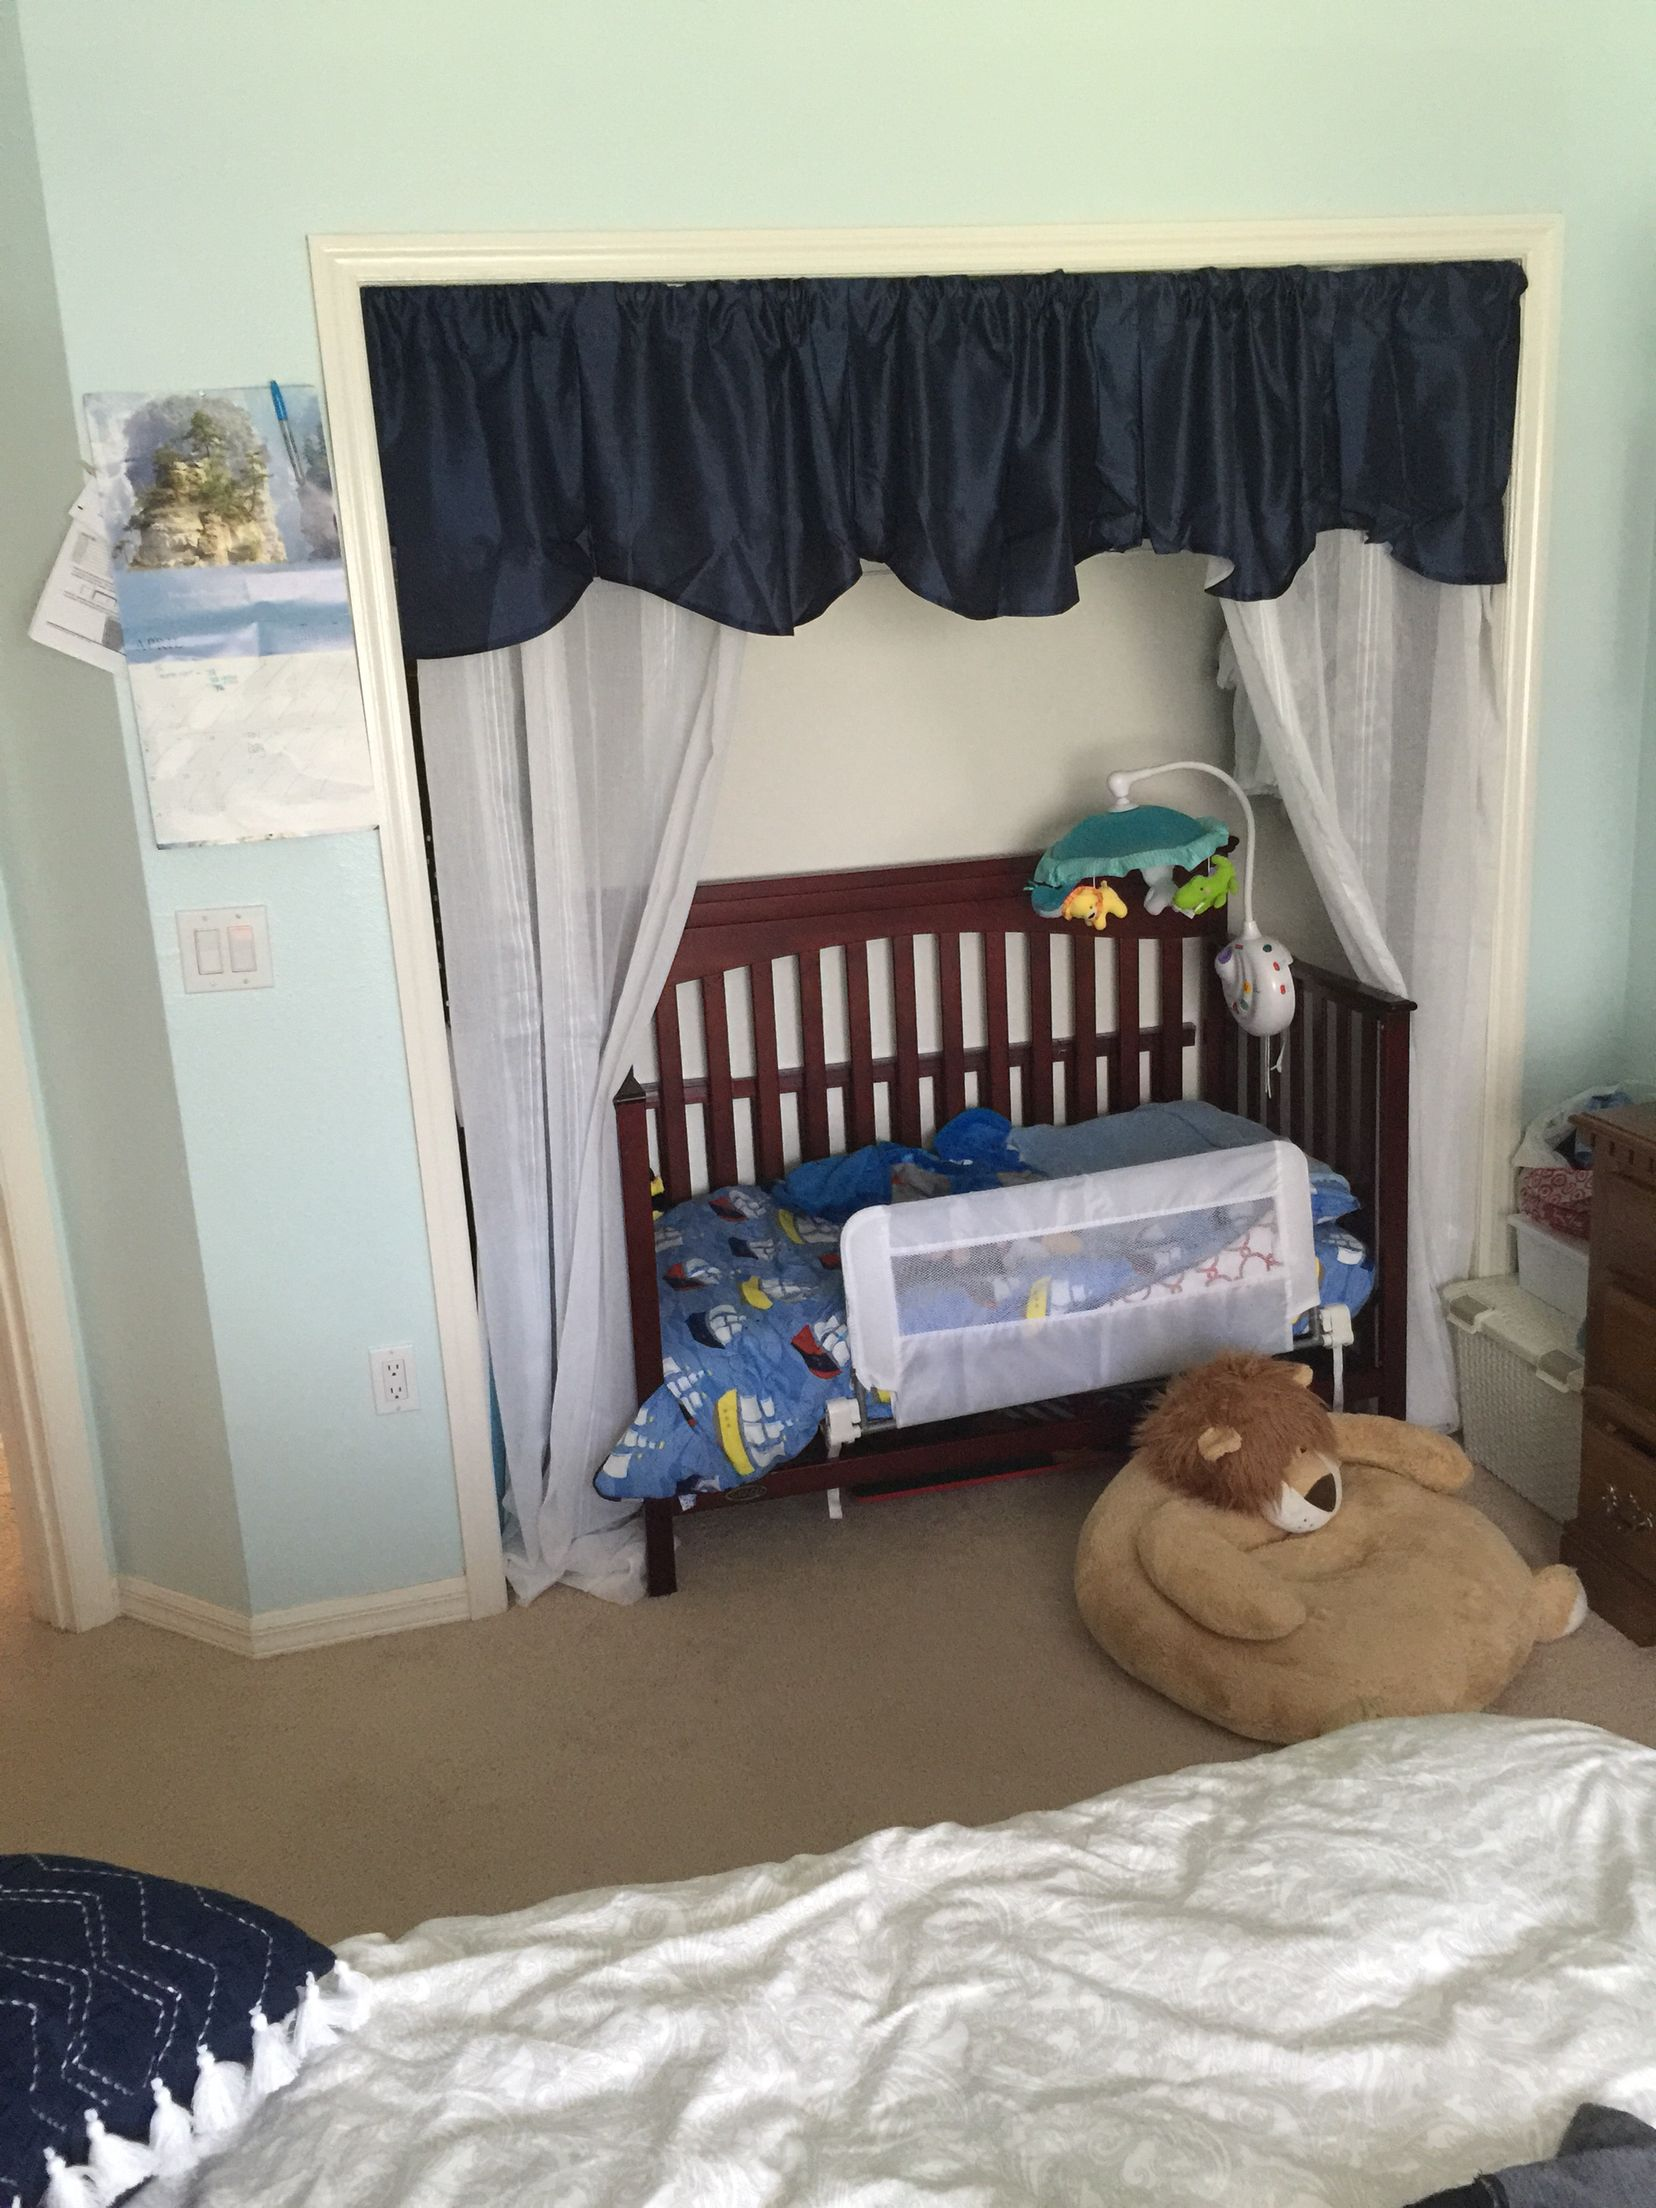 Toddler Bed In Closet